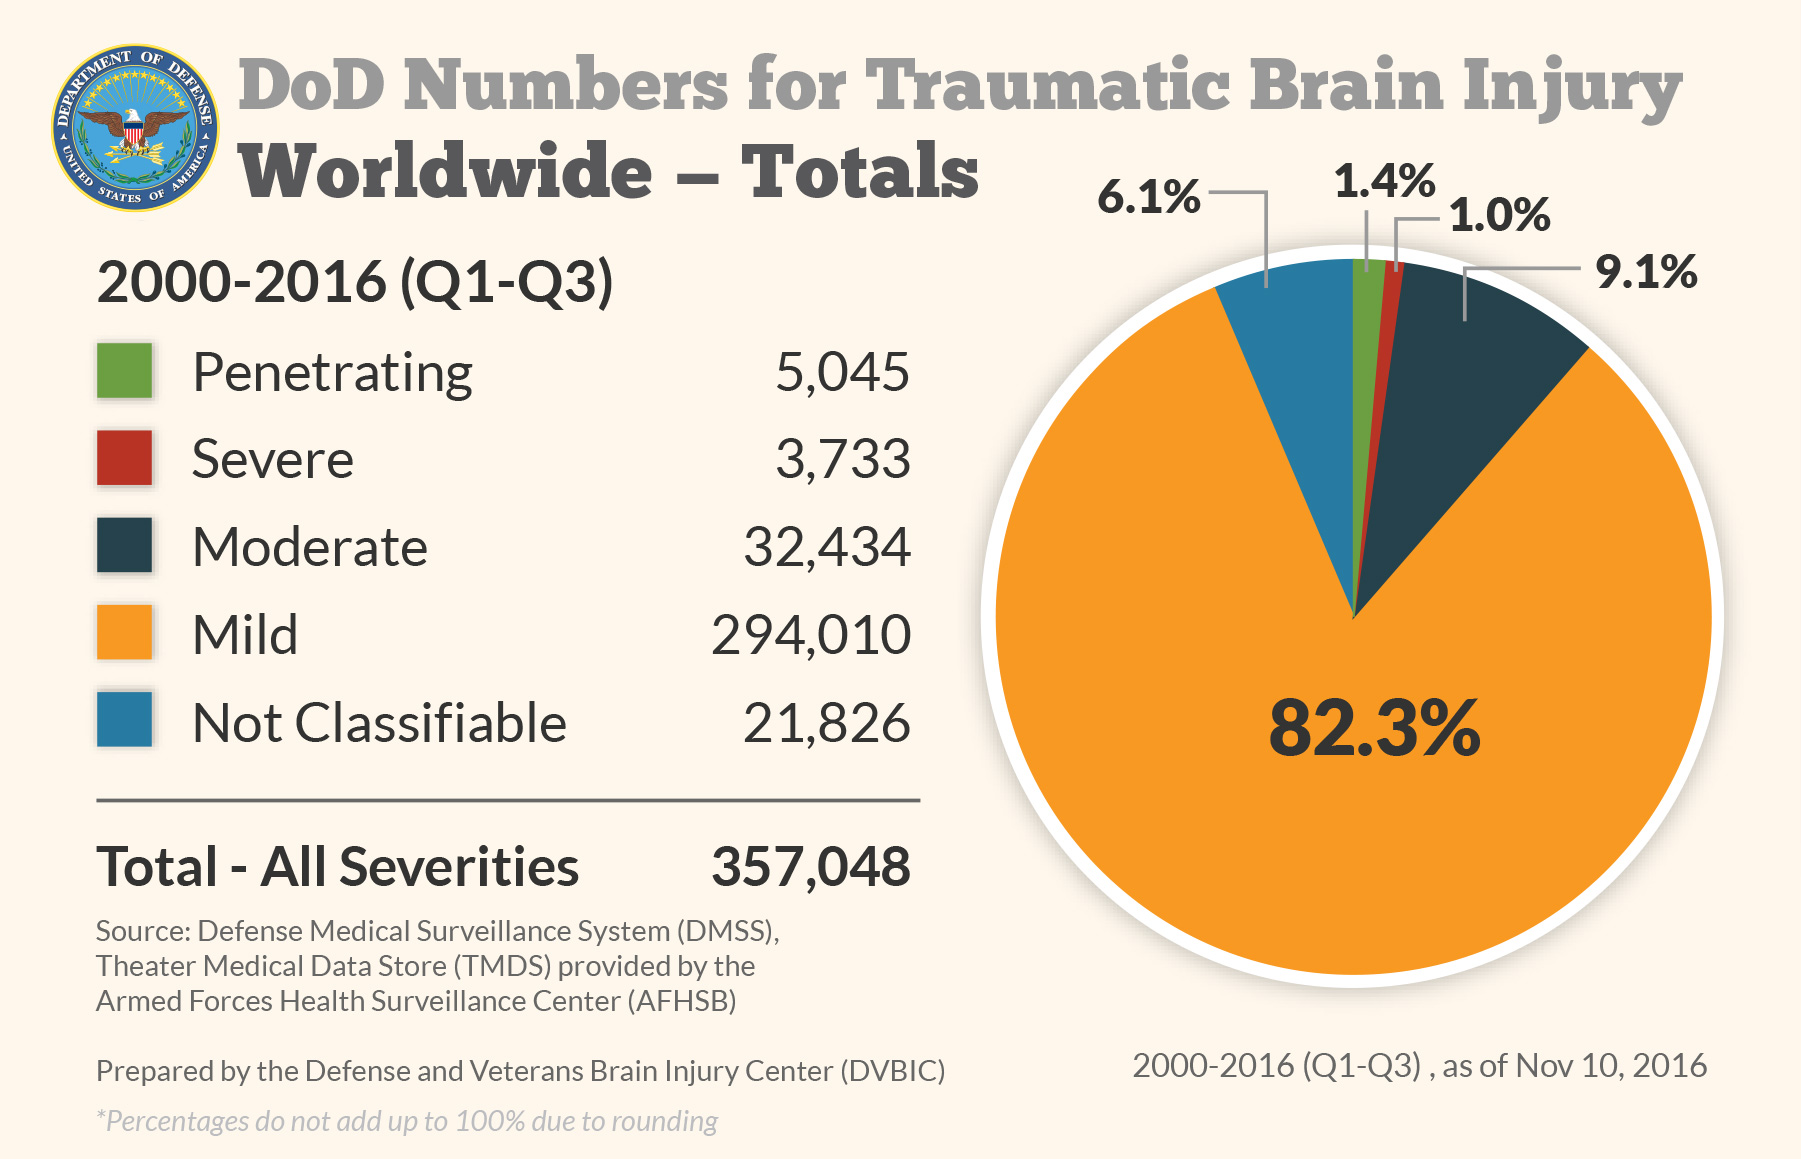 DoD Numbers for Traumatic Brain Injury Worldwide - Totals